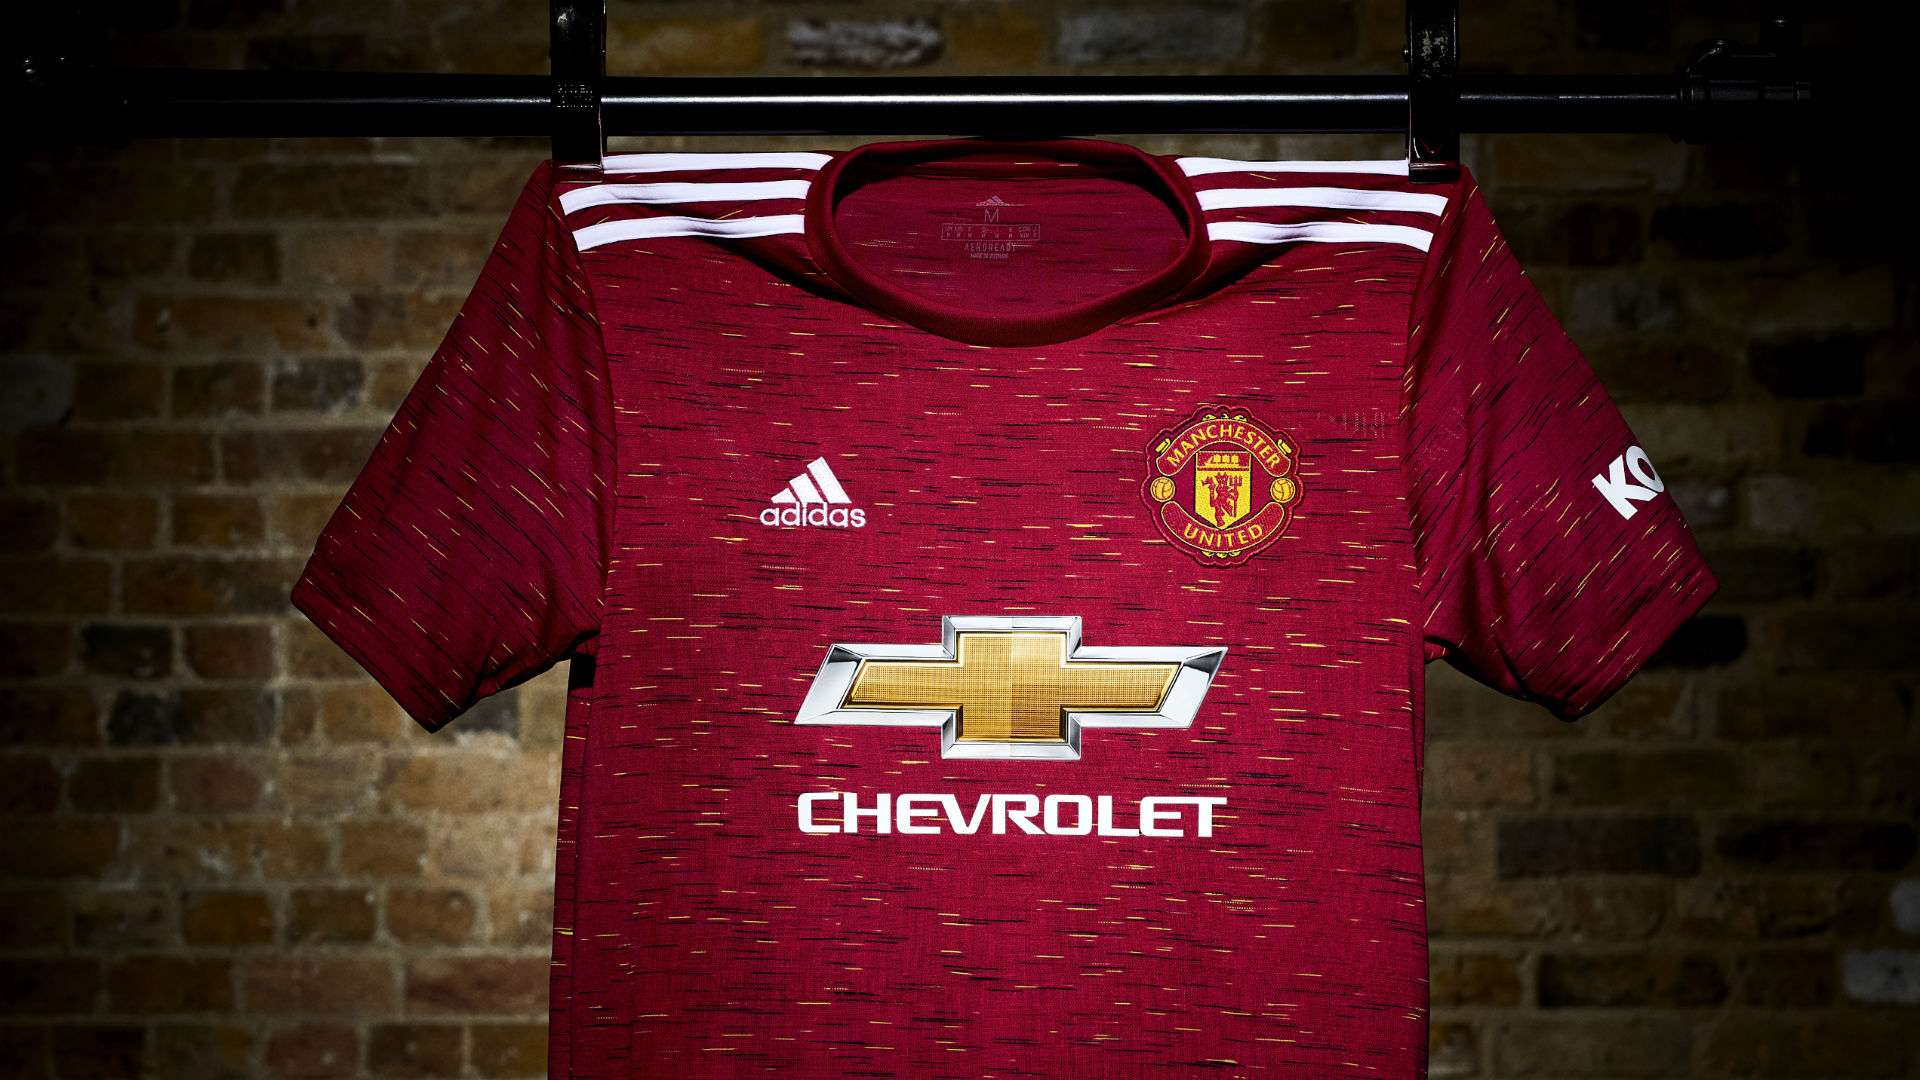 manchester united s 2020 21 kit new home away and third jersey styles and release dates goal com manchester united s 2020 21 kit new